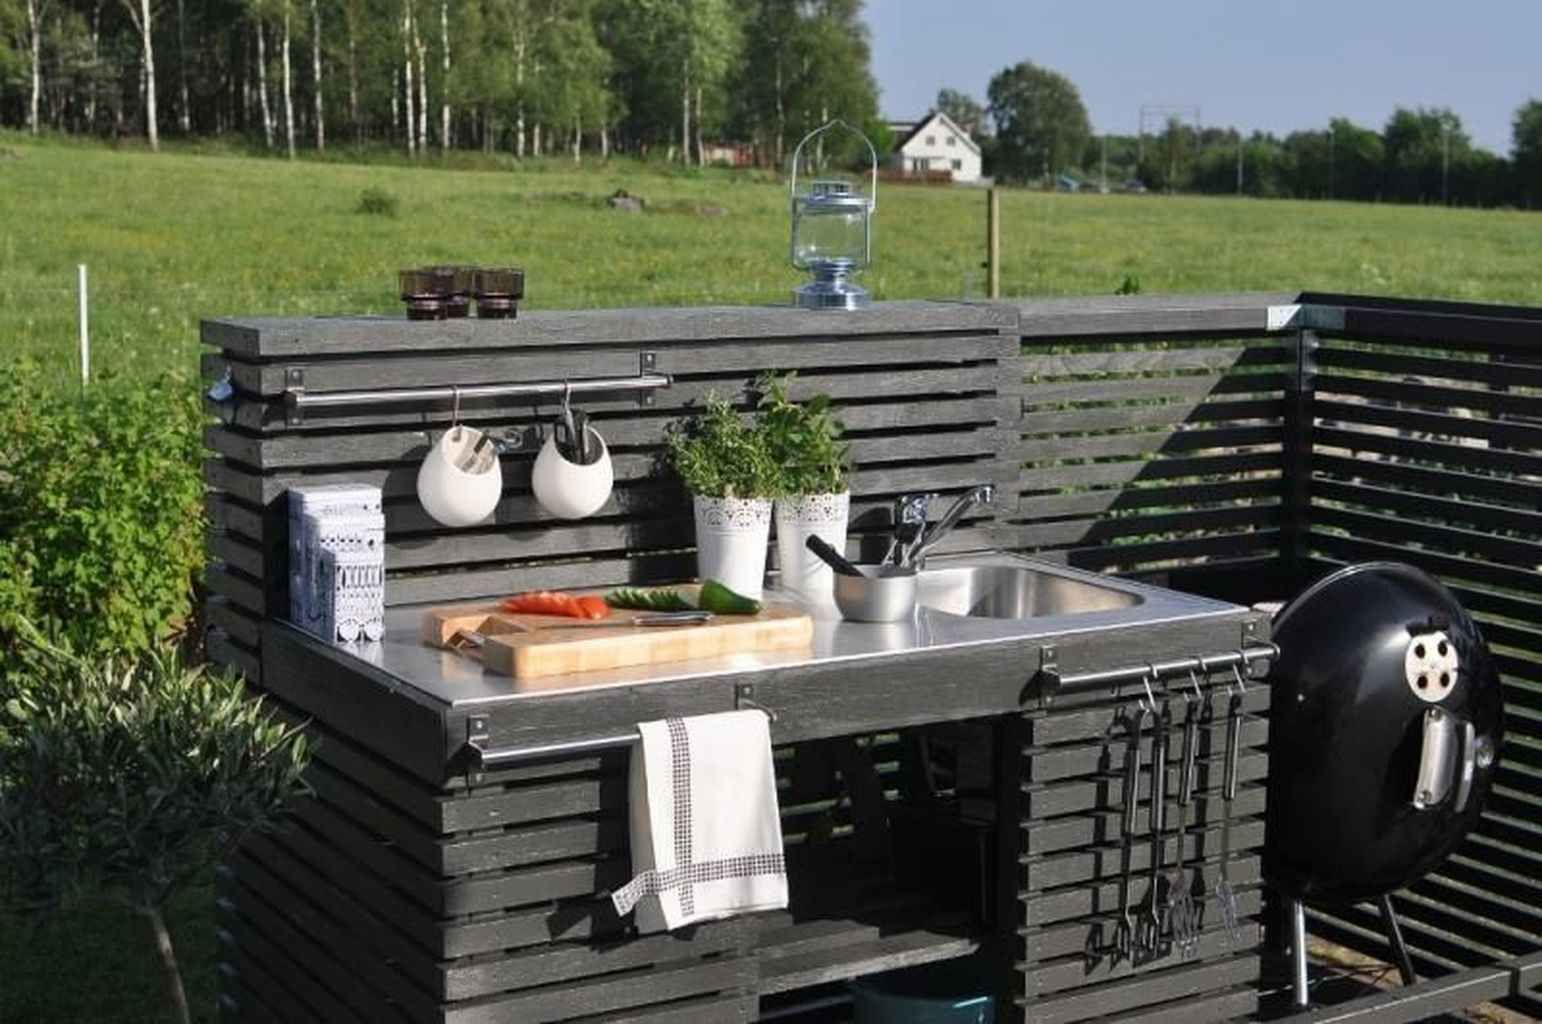 51 Best Outdoor Kitchen And Grill Ideas For Summer Backyard Barbeque Outdoor Kitchen Decor Outdoor Kitchen Sink Diy Outdoor Kitchen